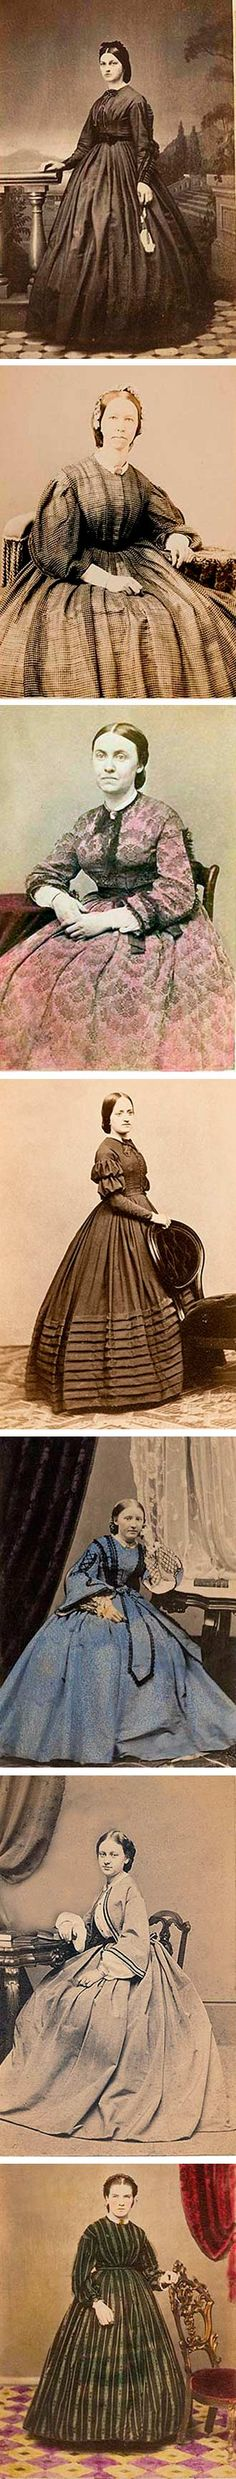 Daguerrotypes, some colored, 1860s. All pics from Phototree